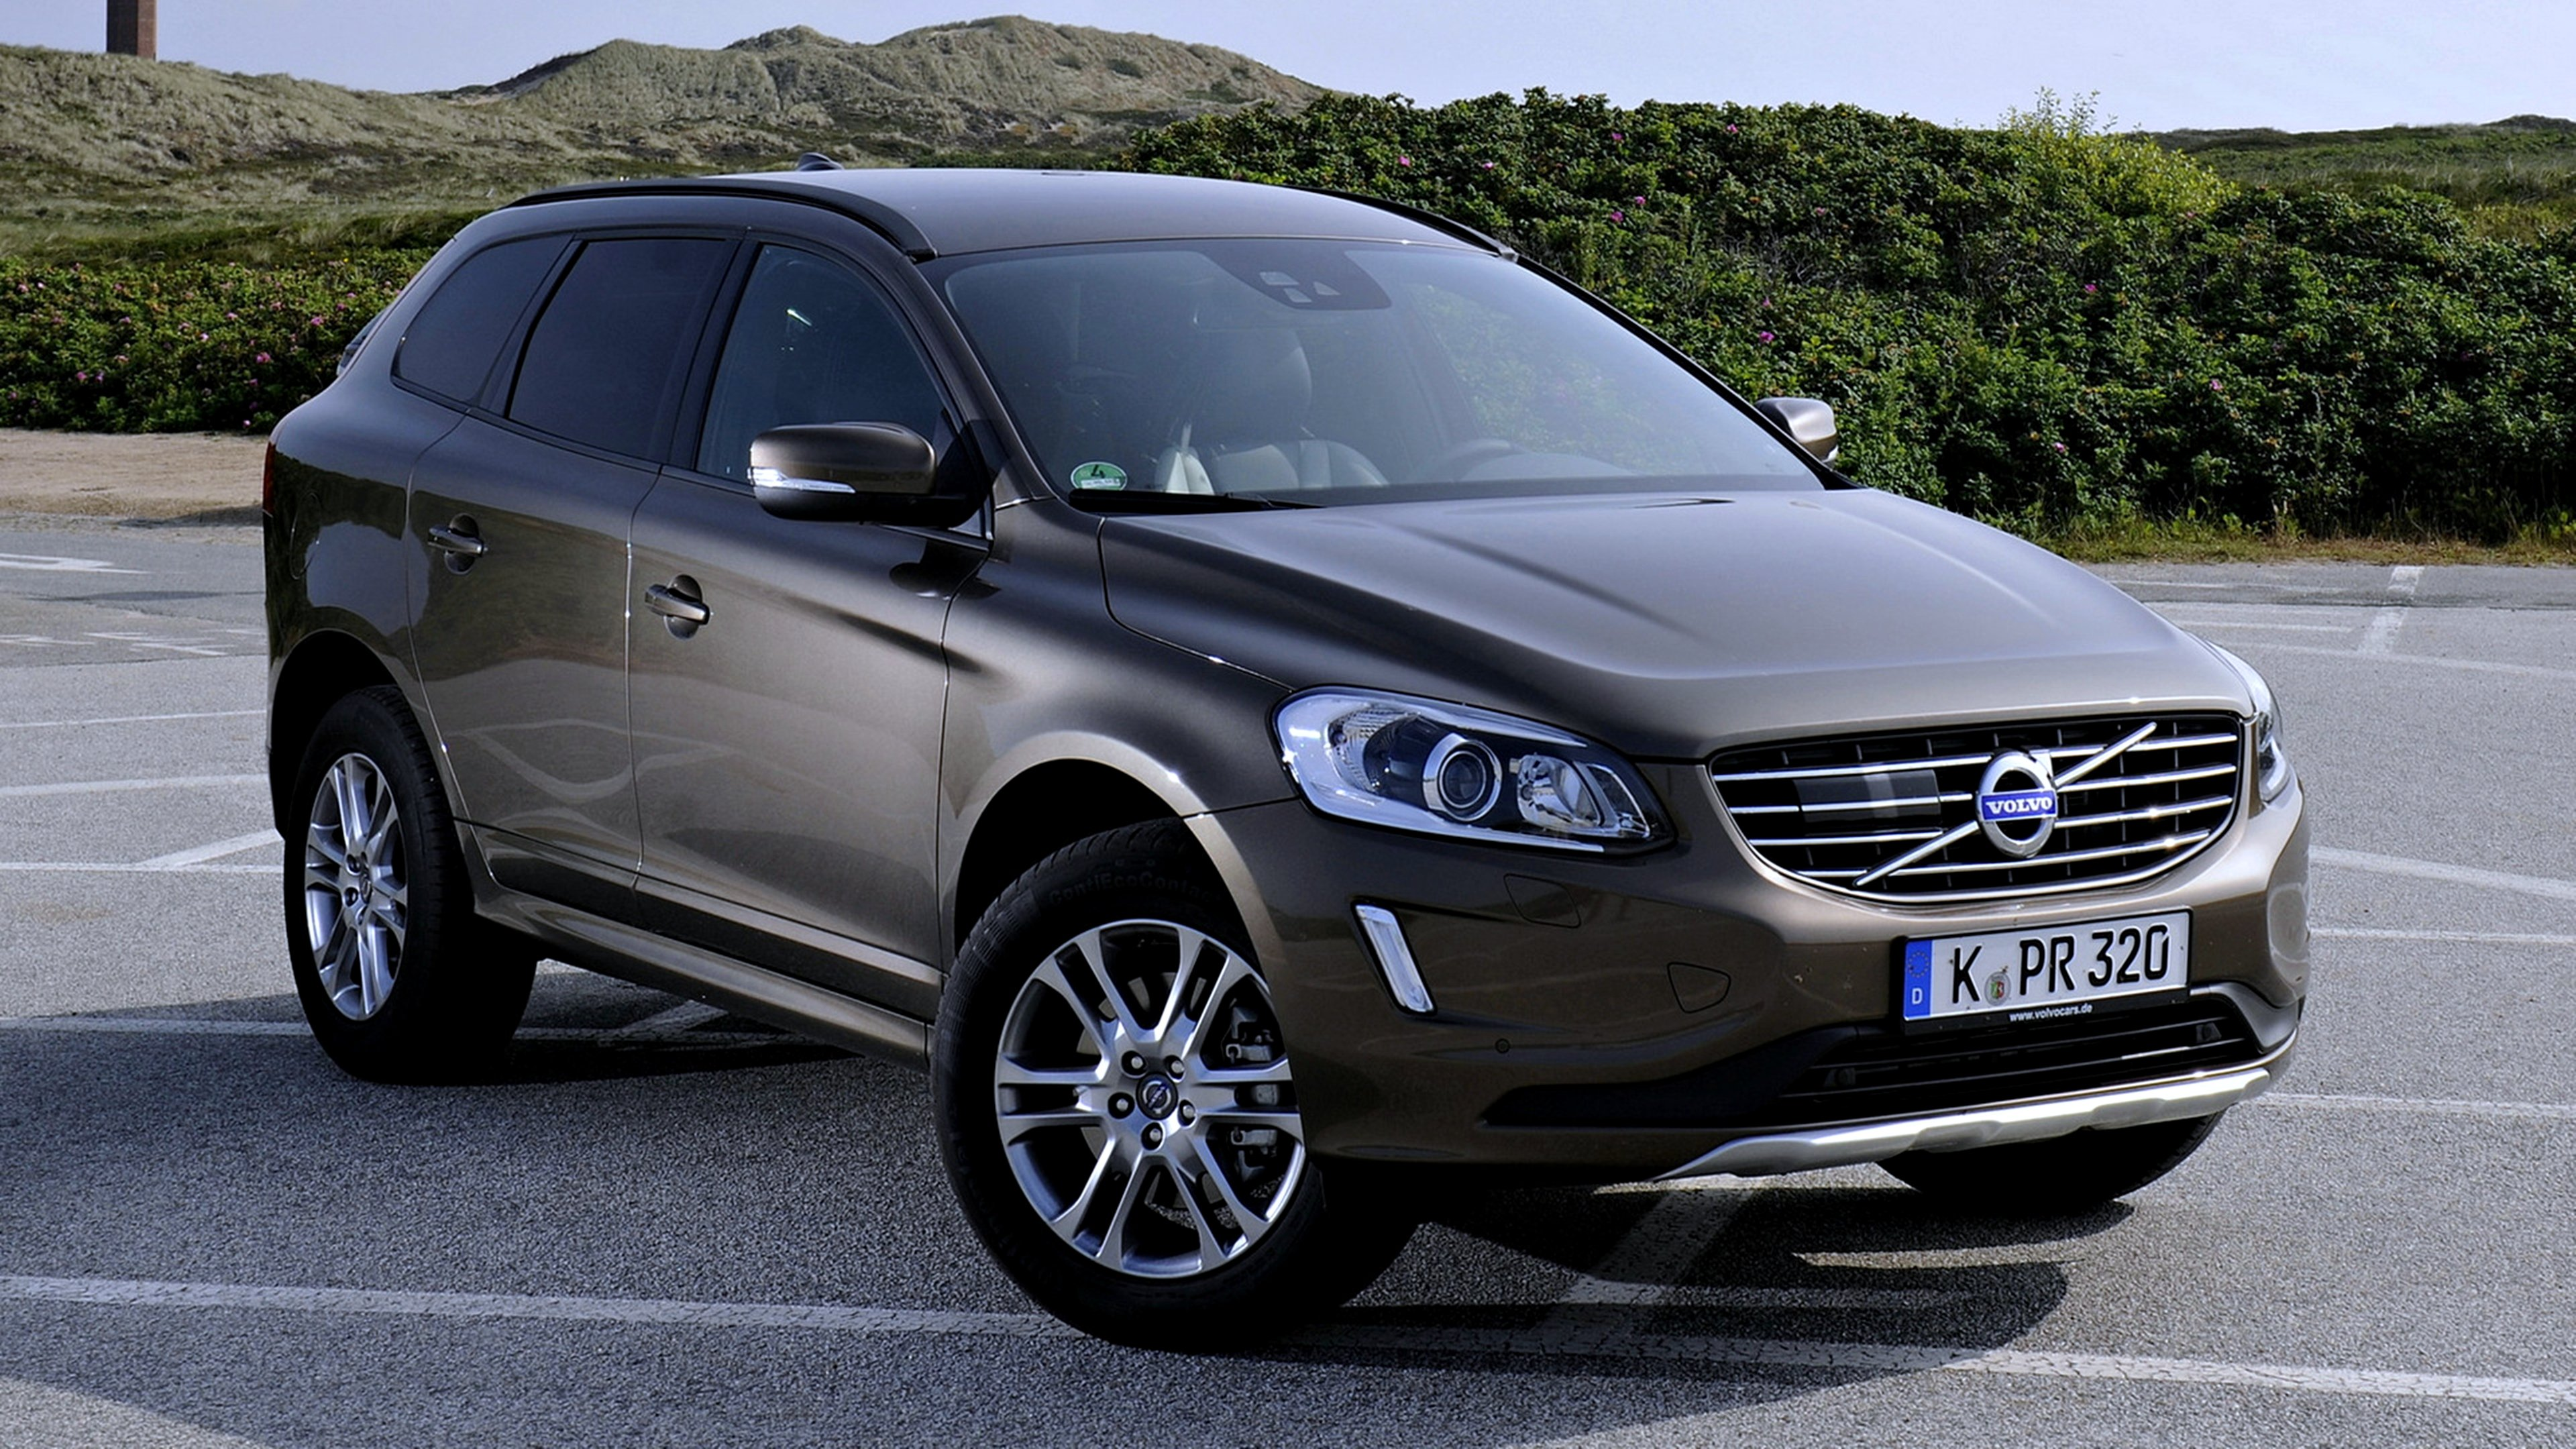 2013 volvo xc60 d4 4x4 speed cars motors force road landscape wallpaper 3840x2160 629056. Black Bedroom Furniture Sets. Home Design Ideas